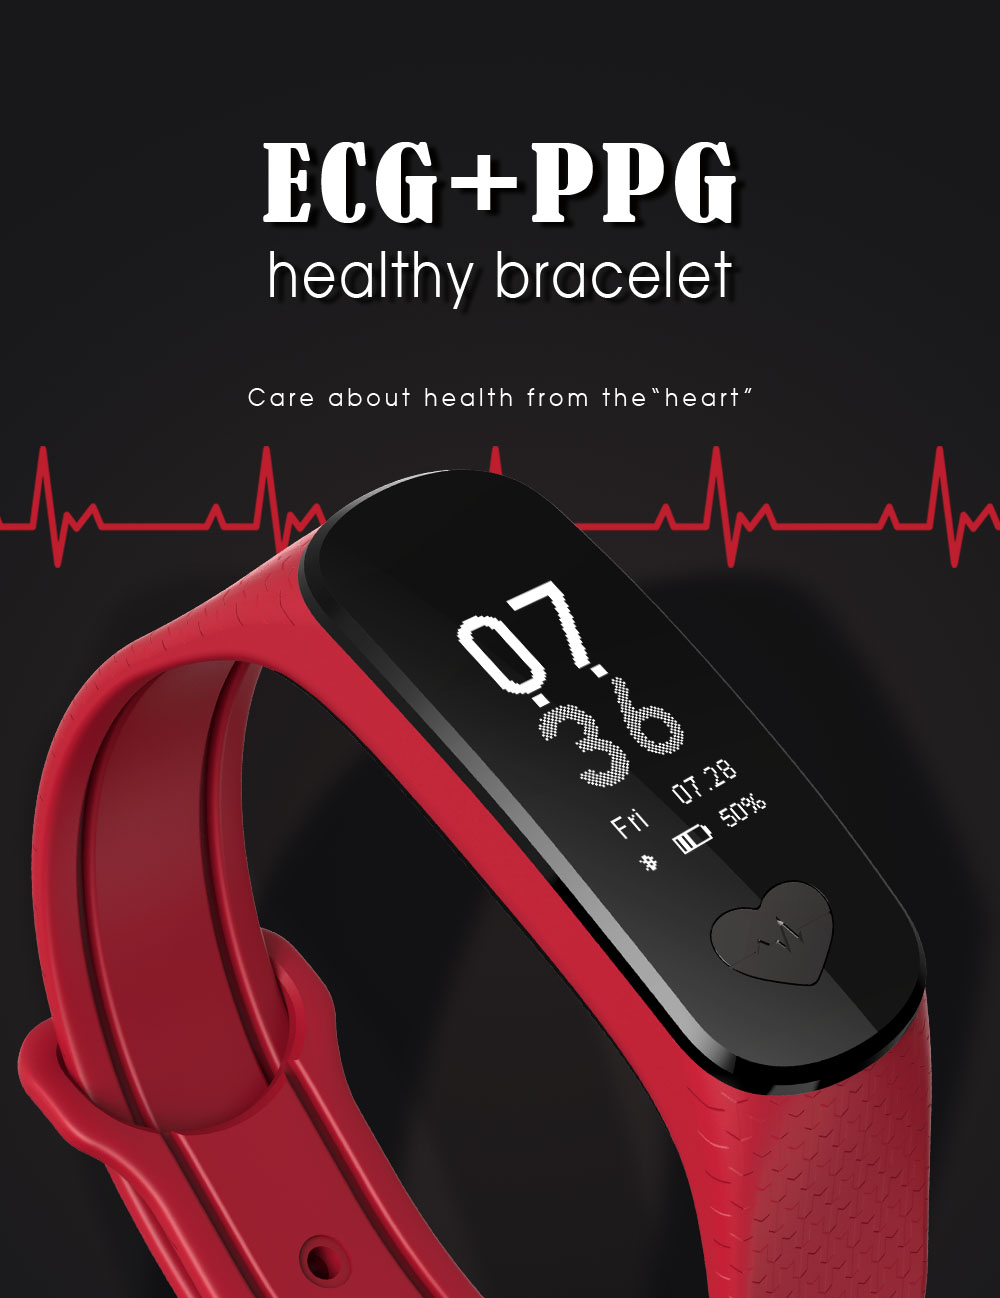 B9 ECG + PPG Health Smartband Heart Rate Blood Pressure Monitor Smart Band Fitness Activity Tracker Wristband Bracelet